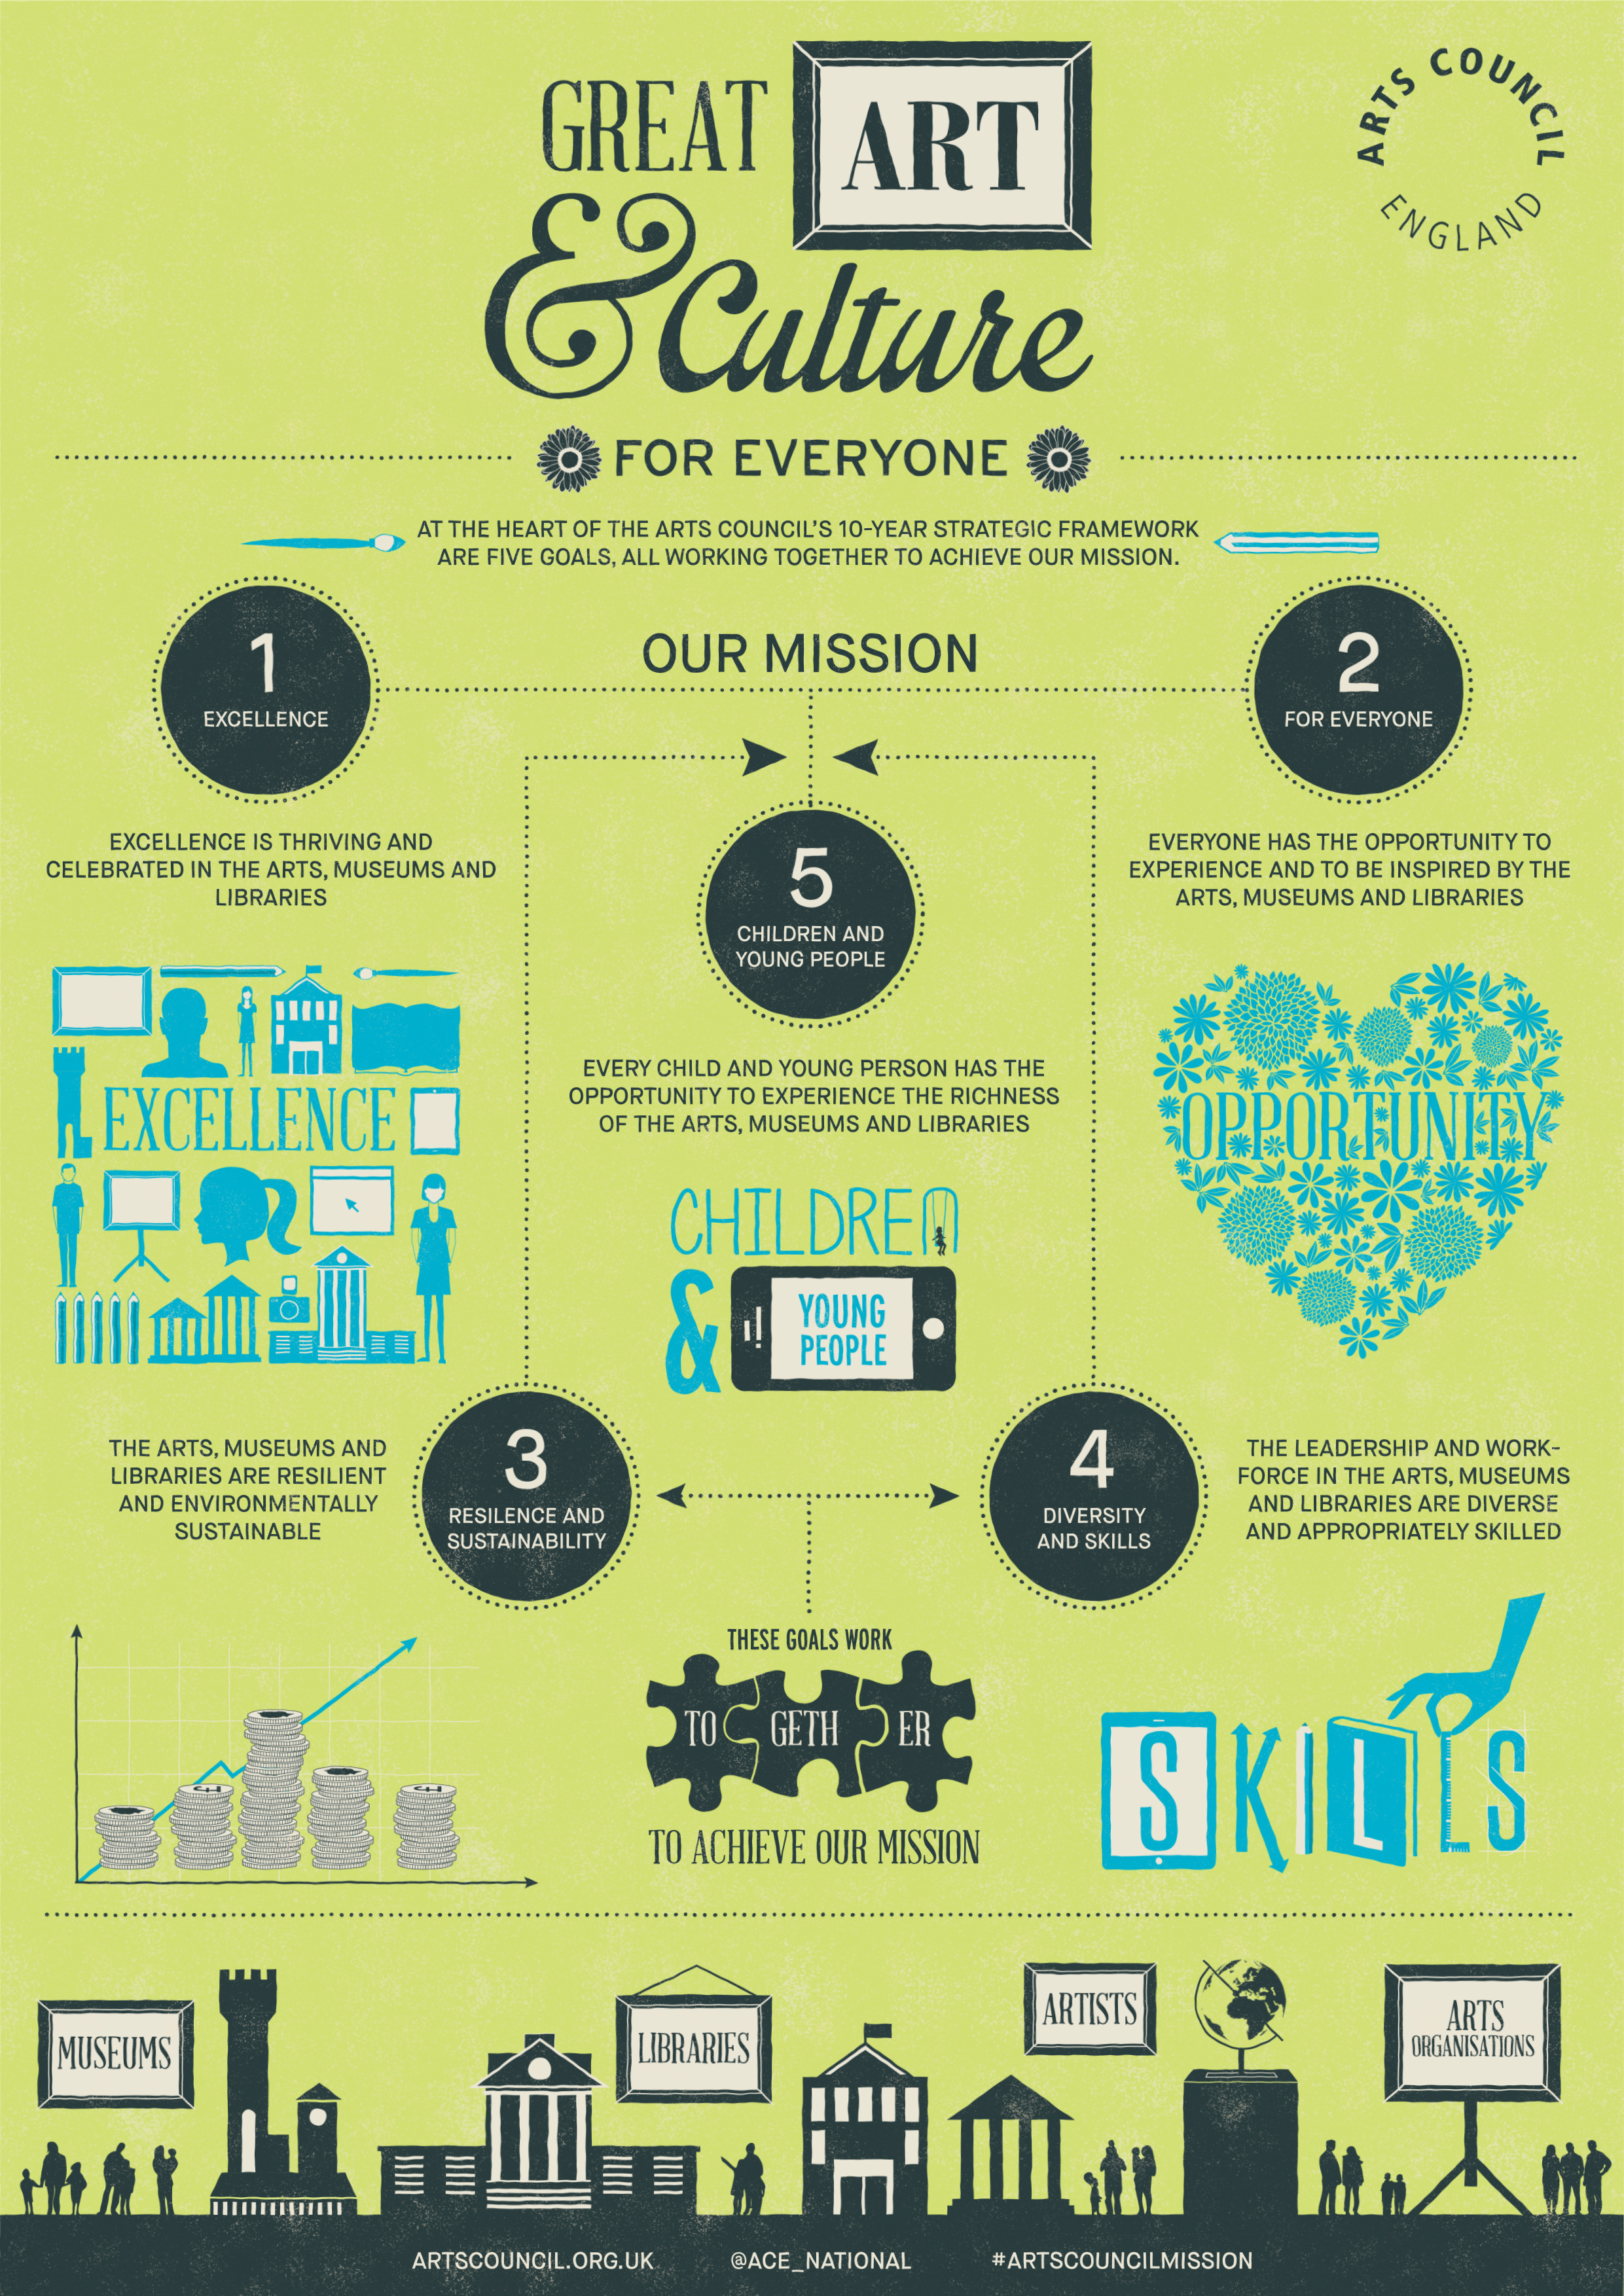 Arts Council Five goals infographic by Dina Makanji